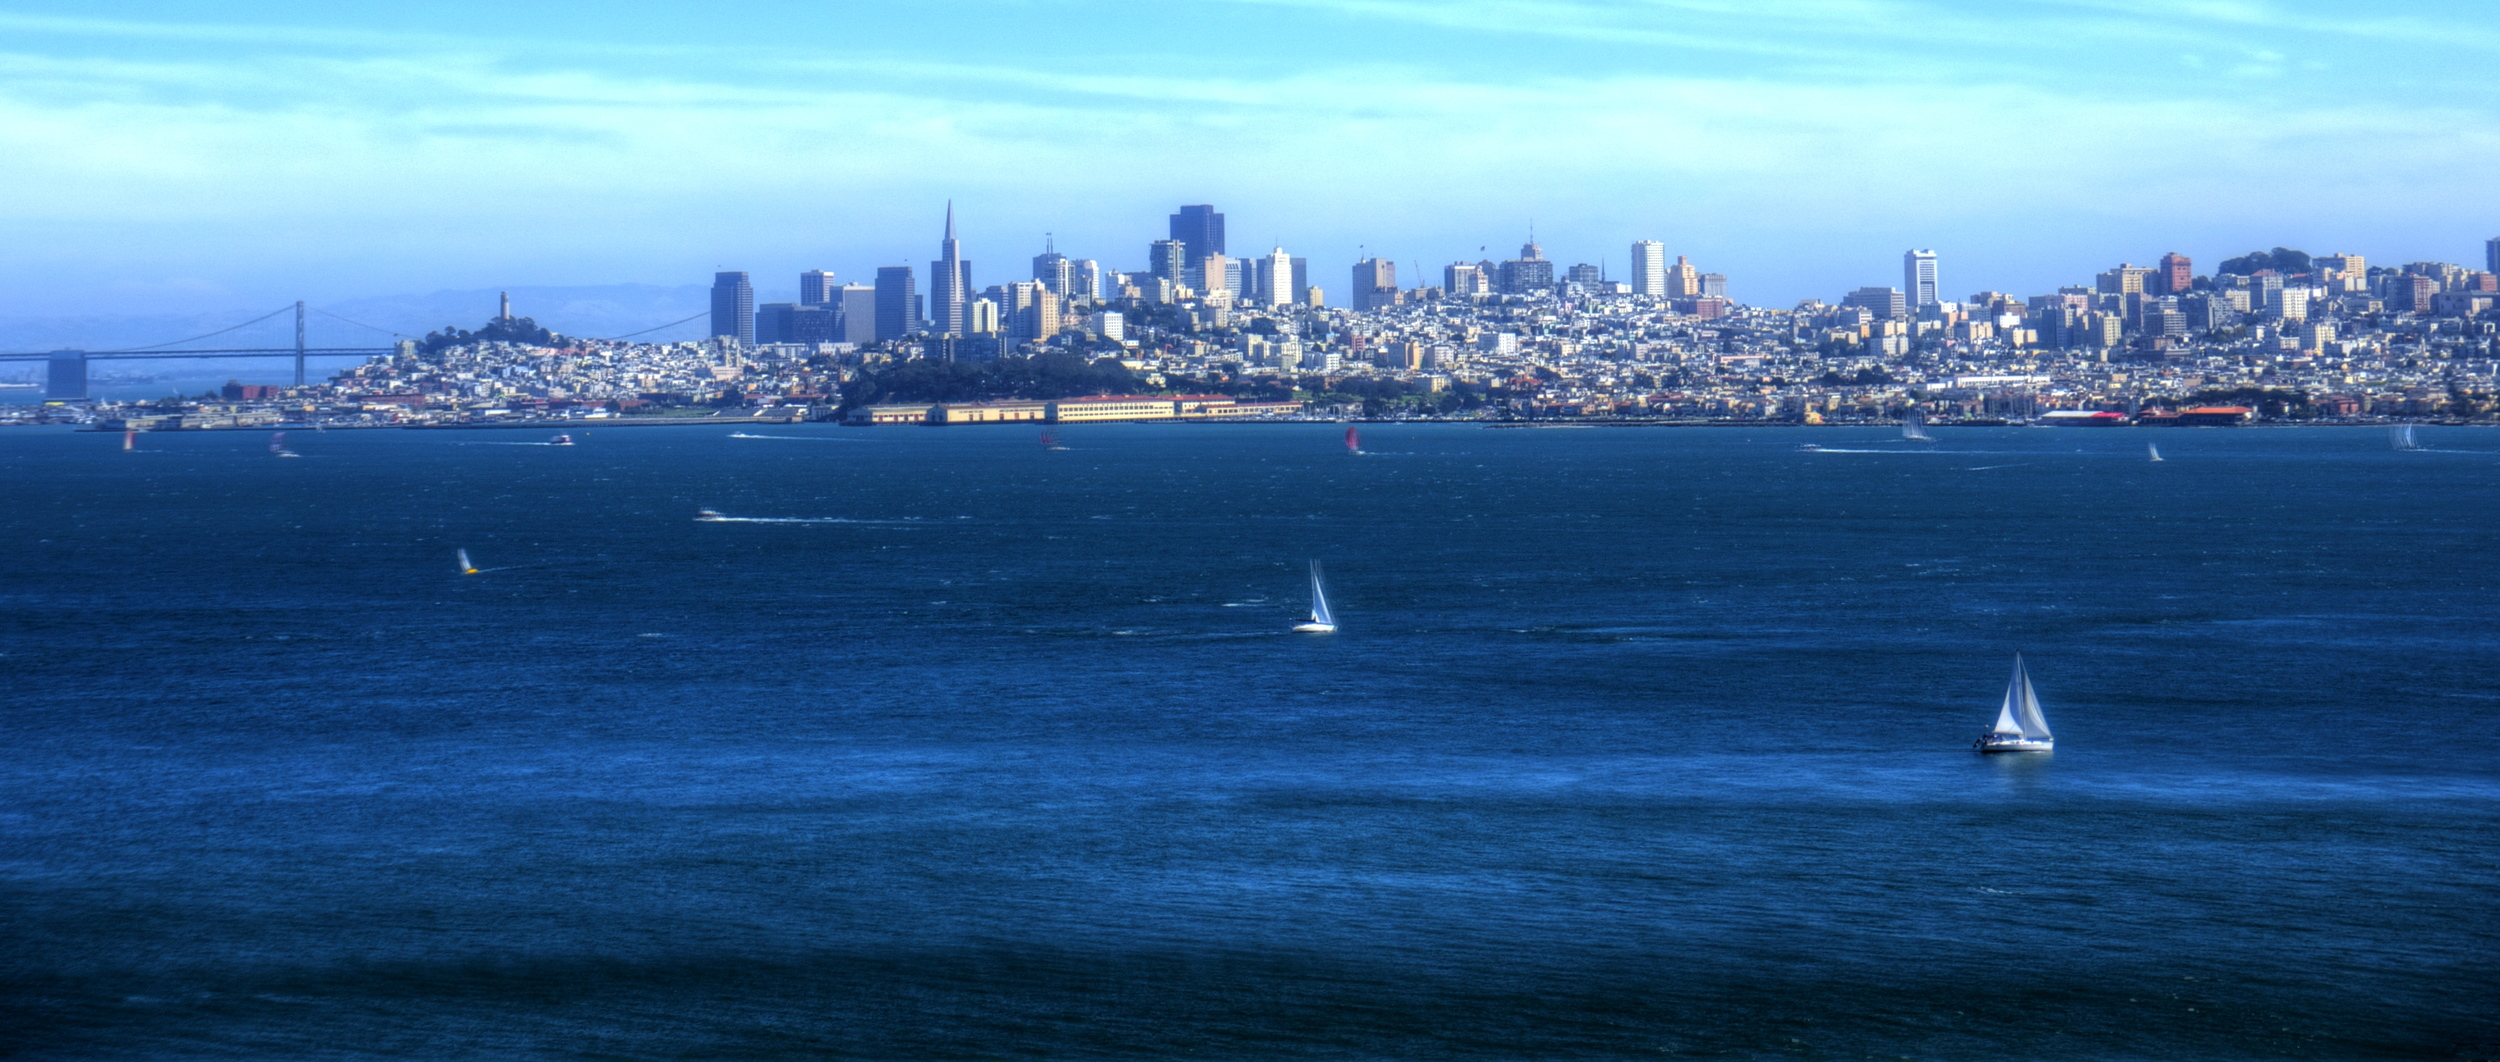 Sailing the bay, backdropped by the San Francisco skyline.